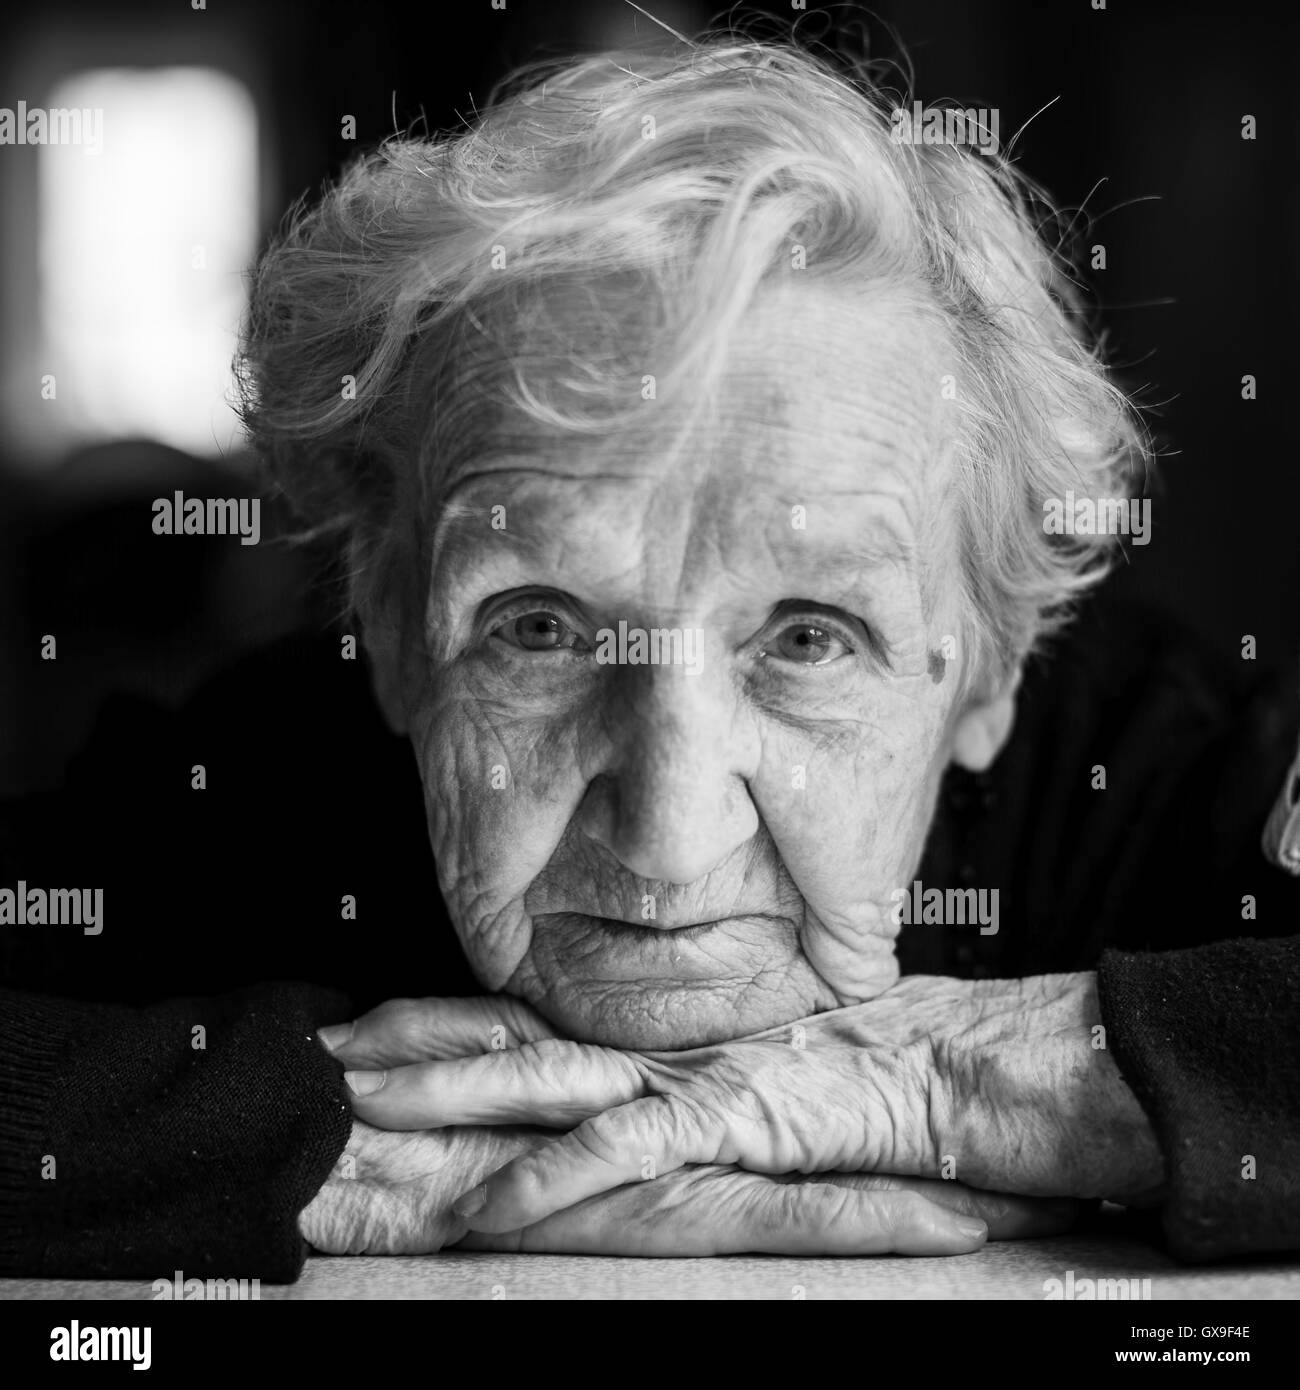 Elderly woman black and white portrait closeup